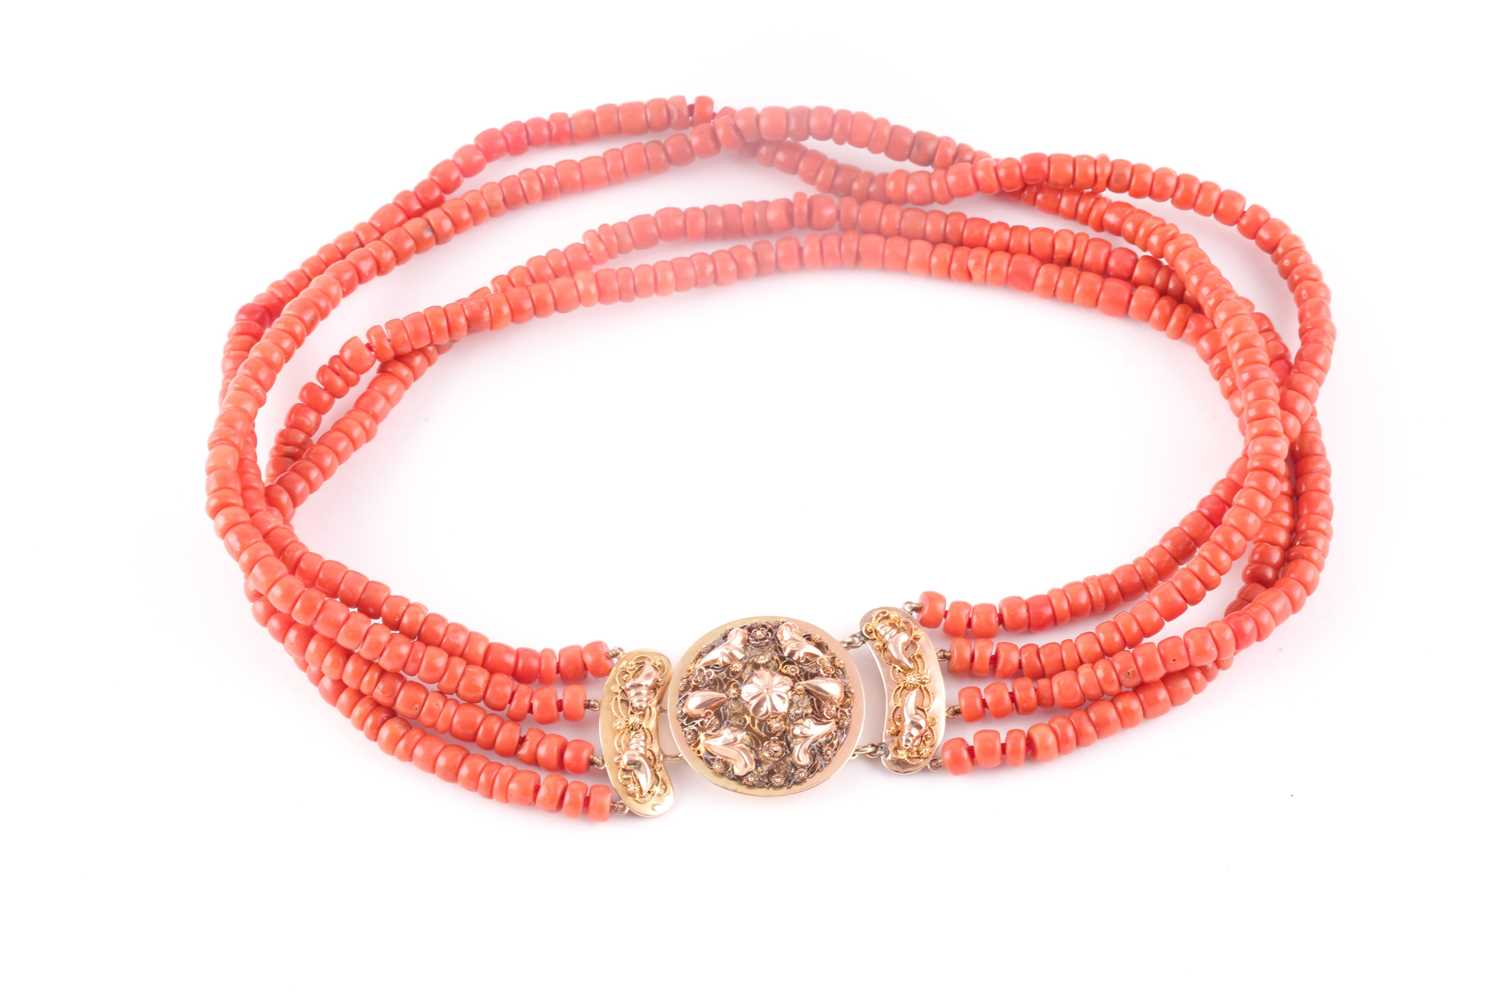 A four strand coral choker necklace, fastened with a Continental yellow metal clasp, the roundel